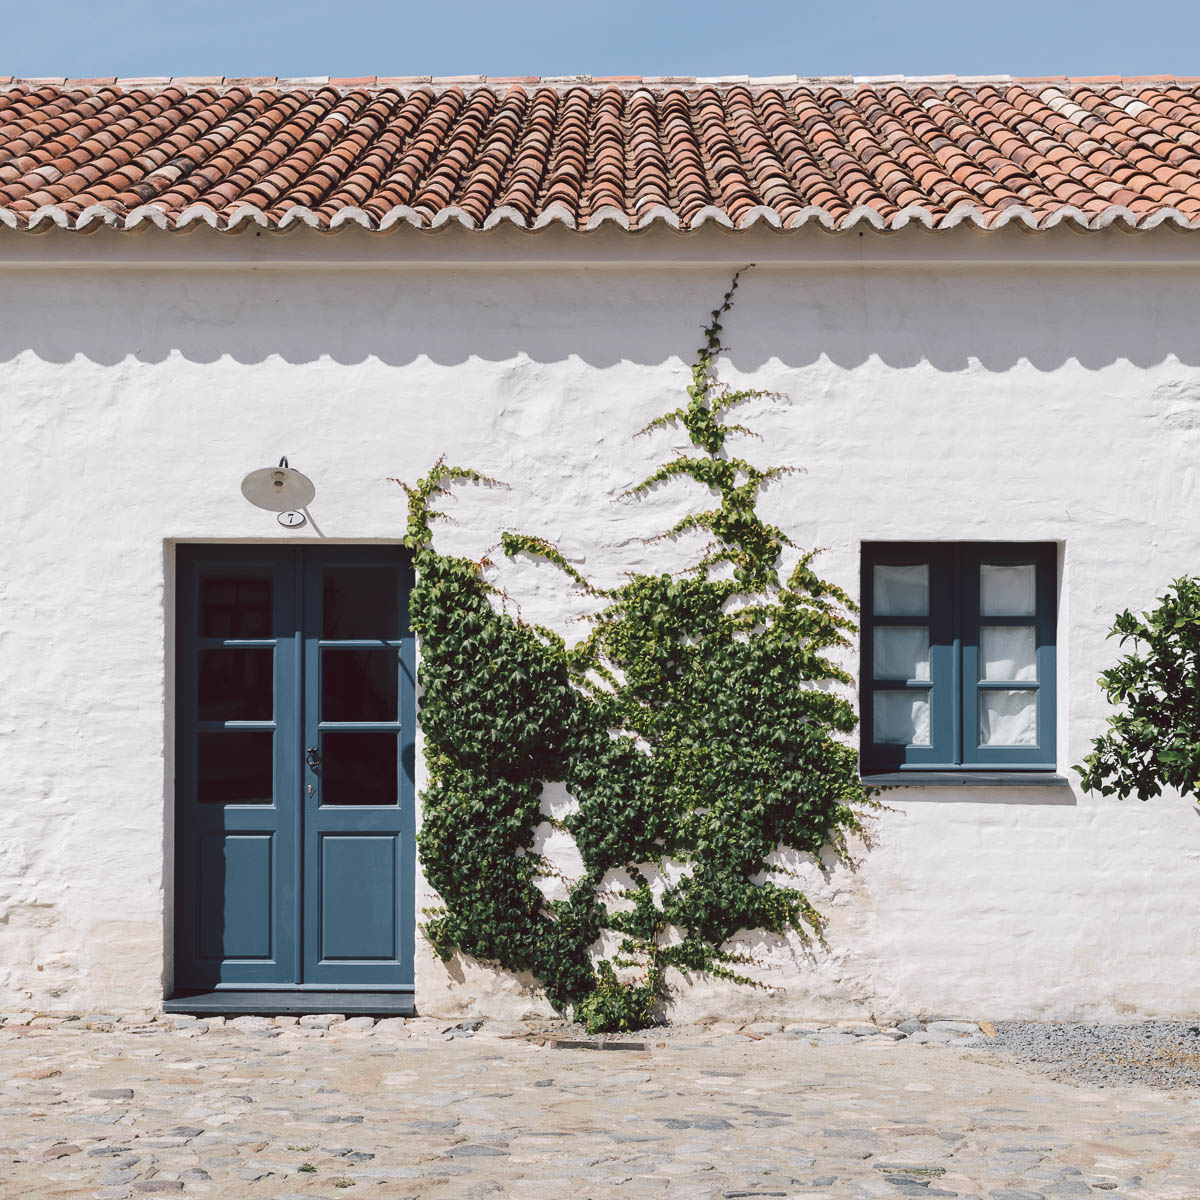 Alentejo retreat fall 2018